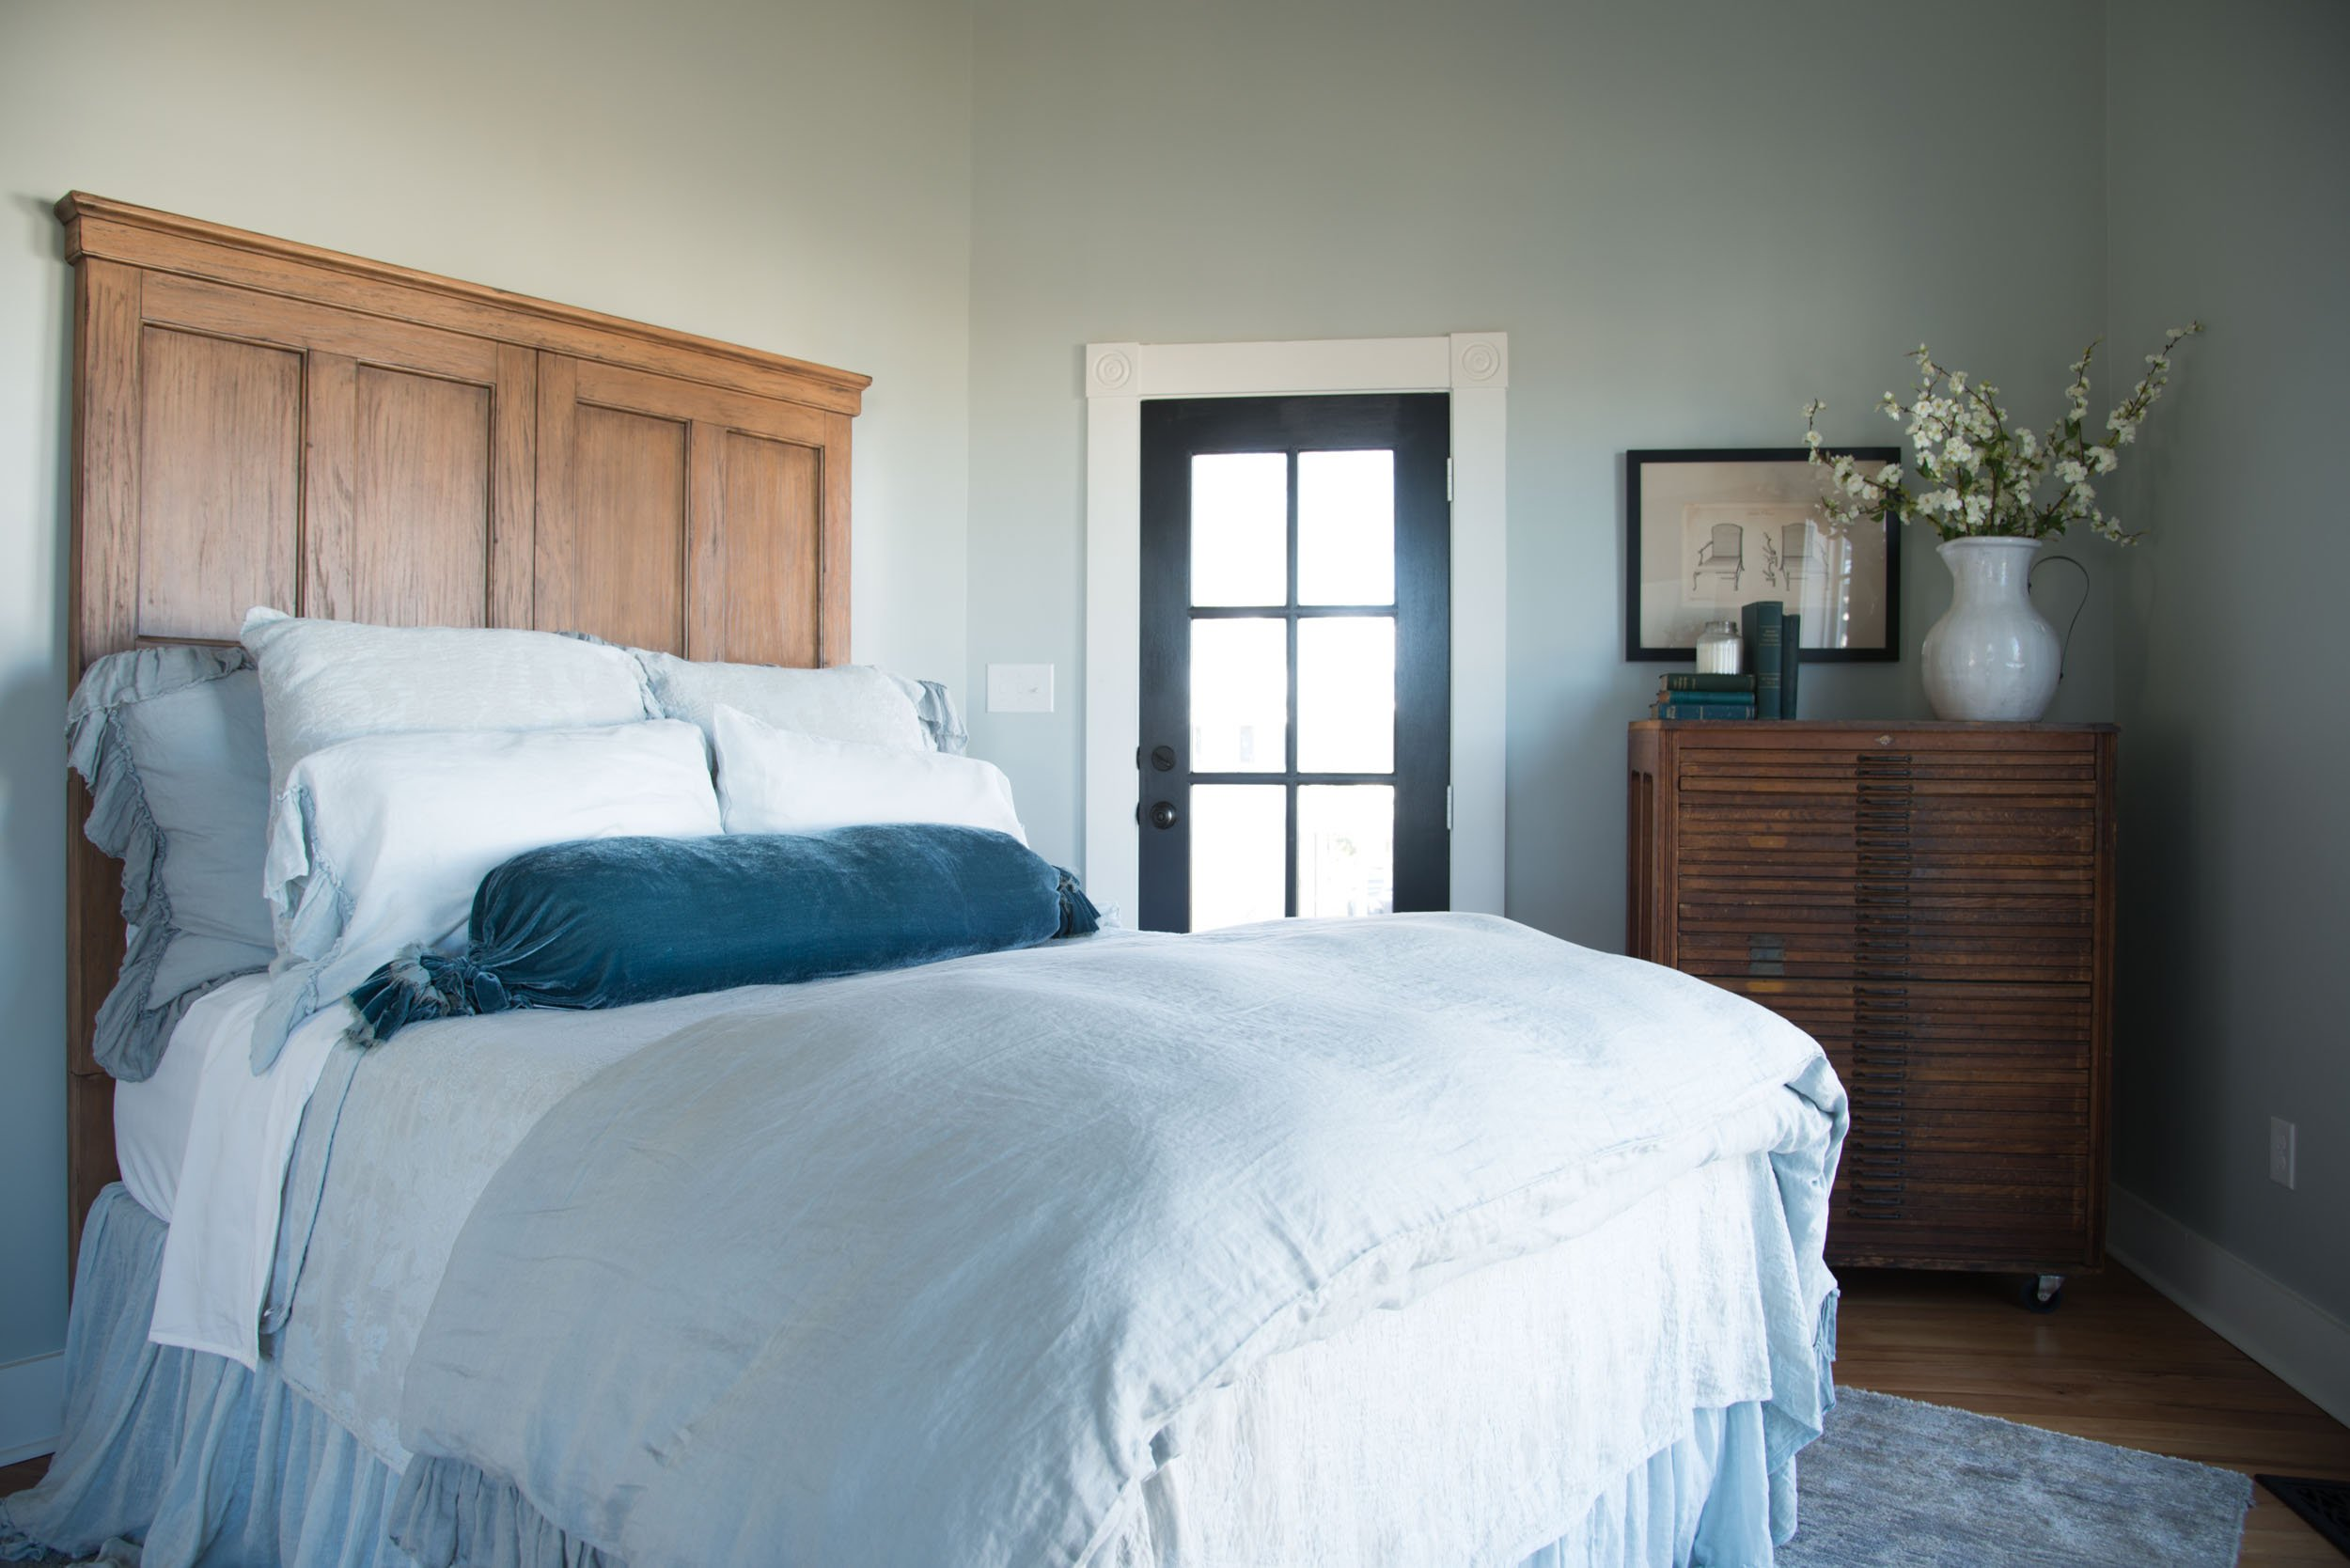 Magnolia House Vacation Rental - one of the cozy bedrooms